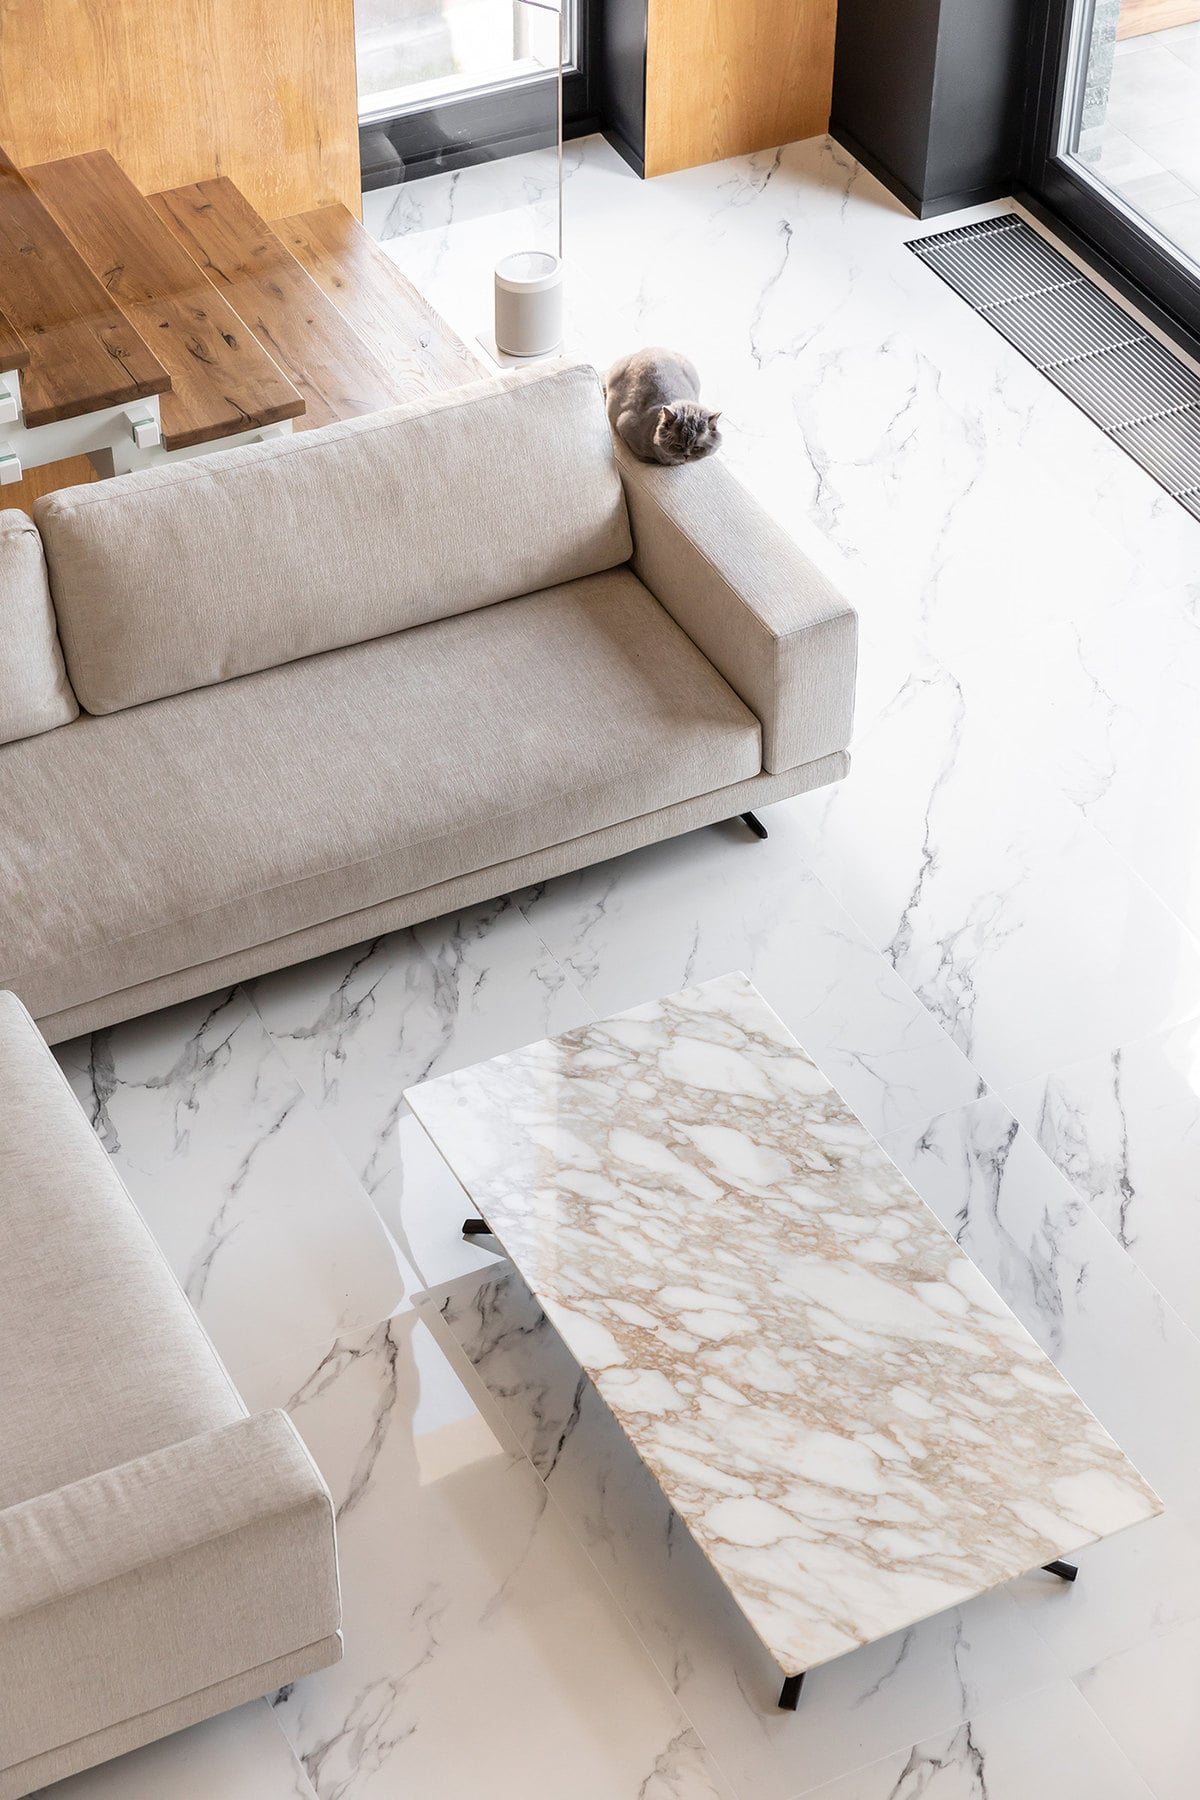 This is a top view of the L-shaped sectional sofa that stands out against the white marble flooring and pairs well with the coffee table.